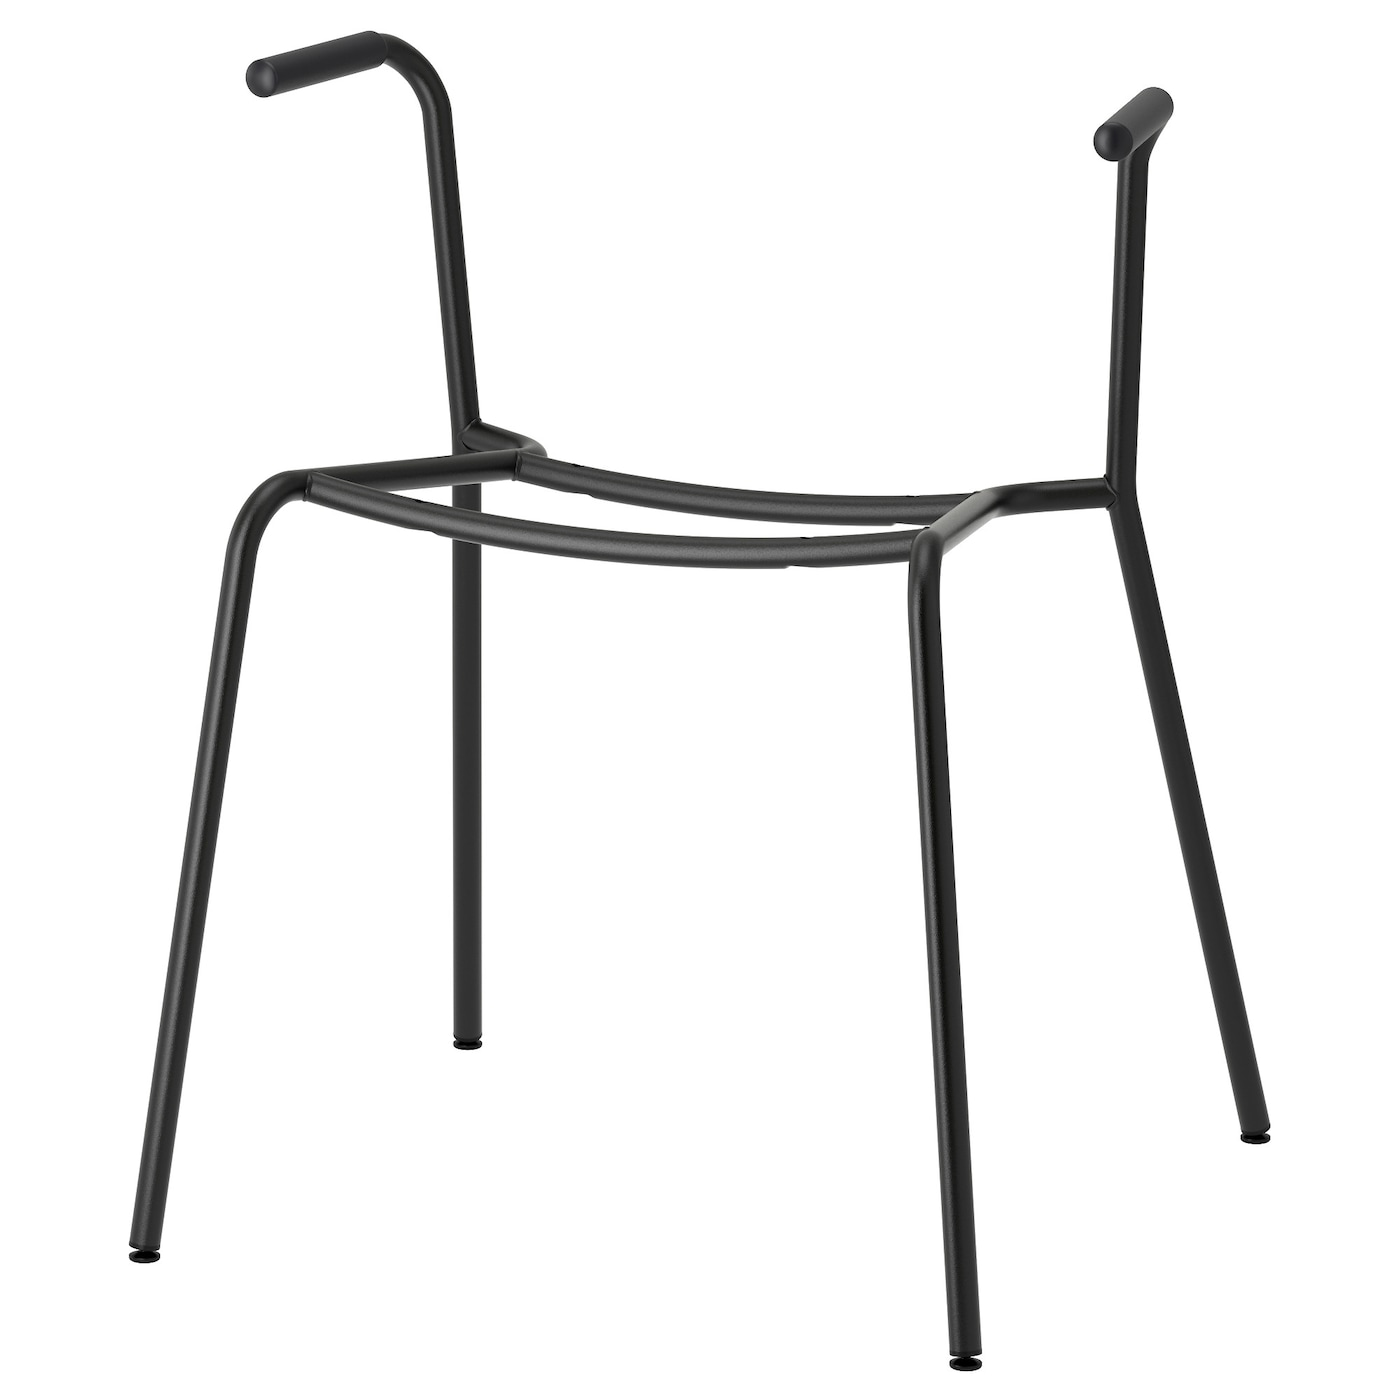 IKEA DIETMAR underframe for chair with armrests The dampers allow you to stack the chairs.